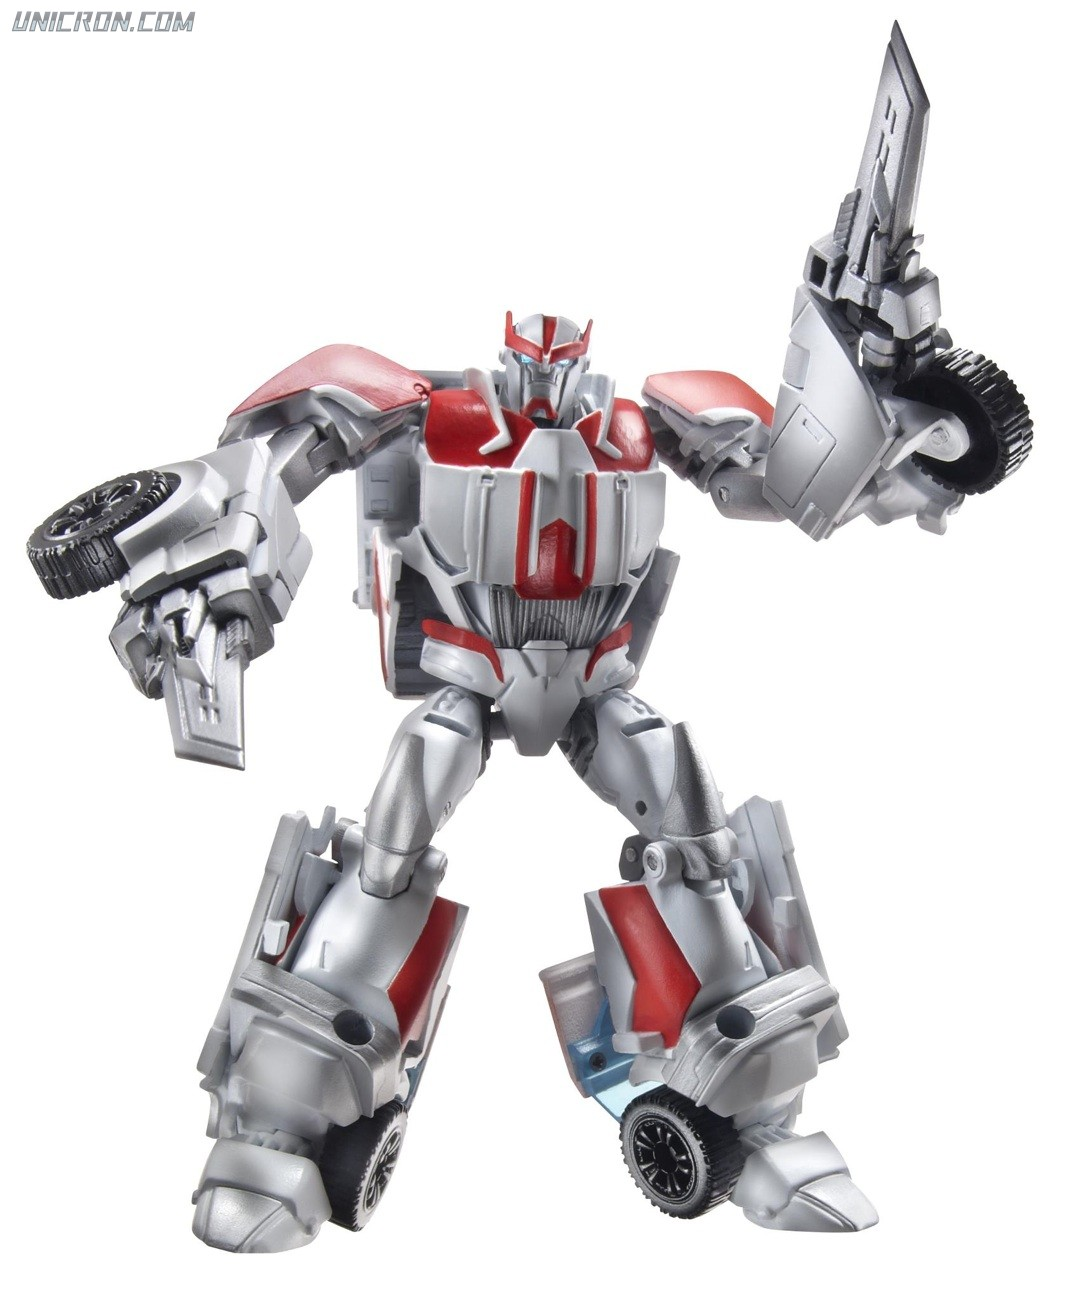 Transformers Prime Autobot Ratchet toy